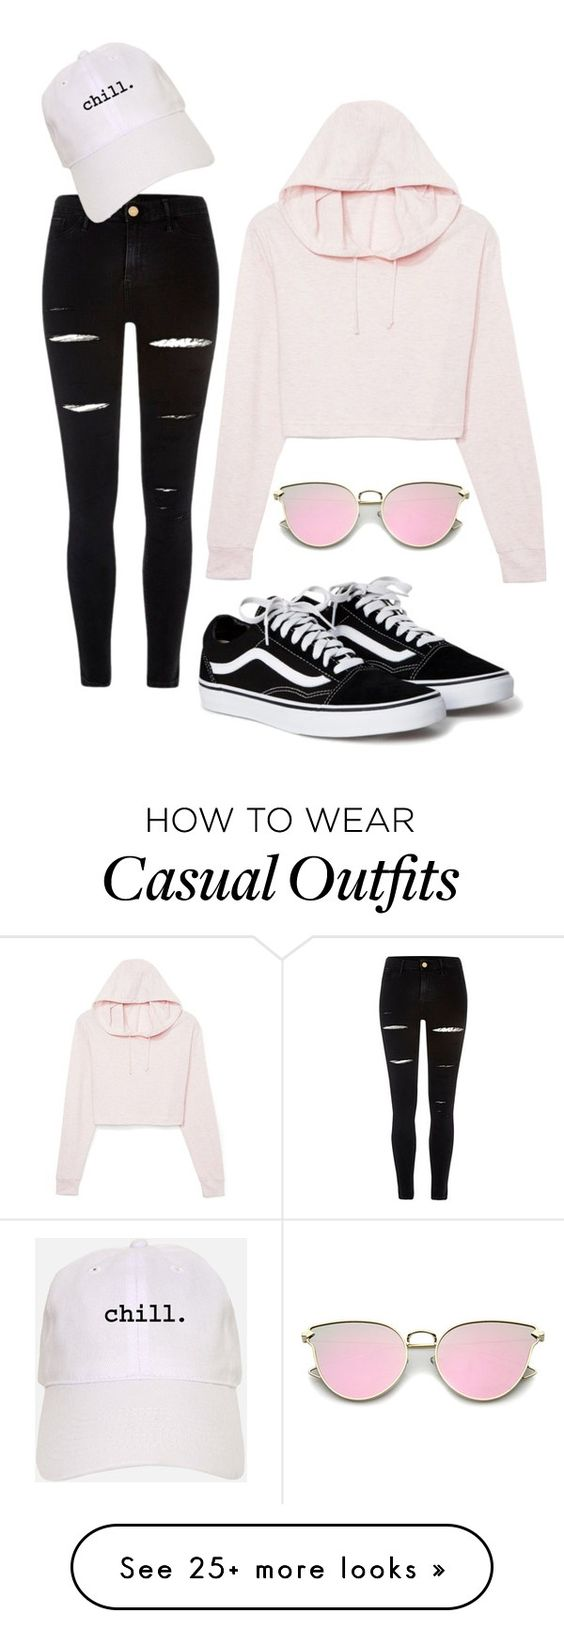 teen outfits 04 sizzlingmagazine - 15+ Cute Outfit Ideas for Teen Girls 2018 – Teenage outfits for School